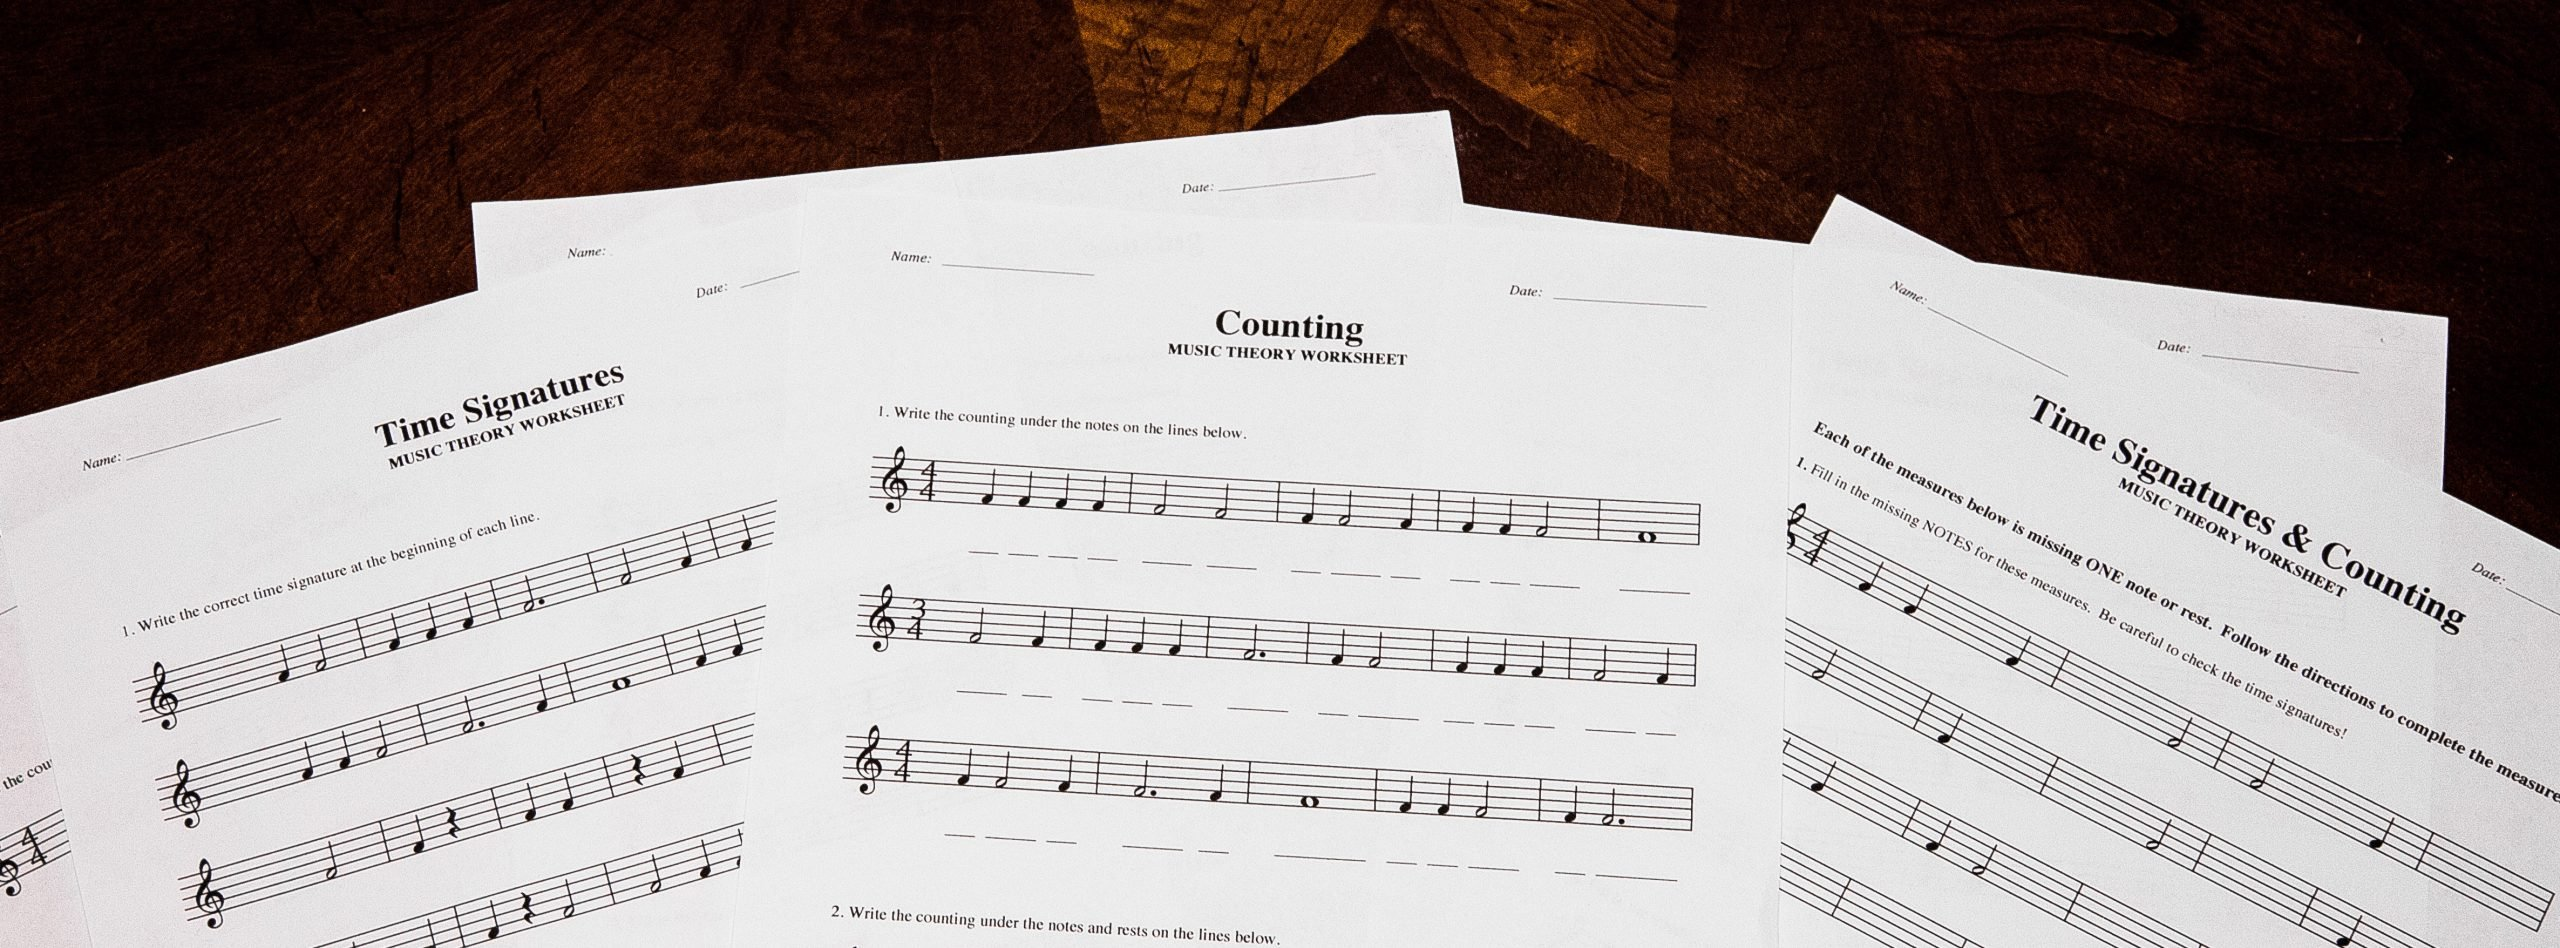 Music Counting Worksheets Time Signatures & Counting Free Printable theory Worksheets